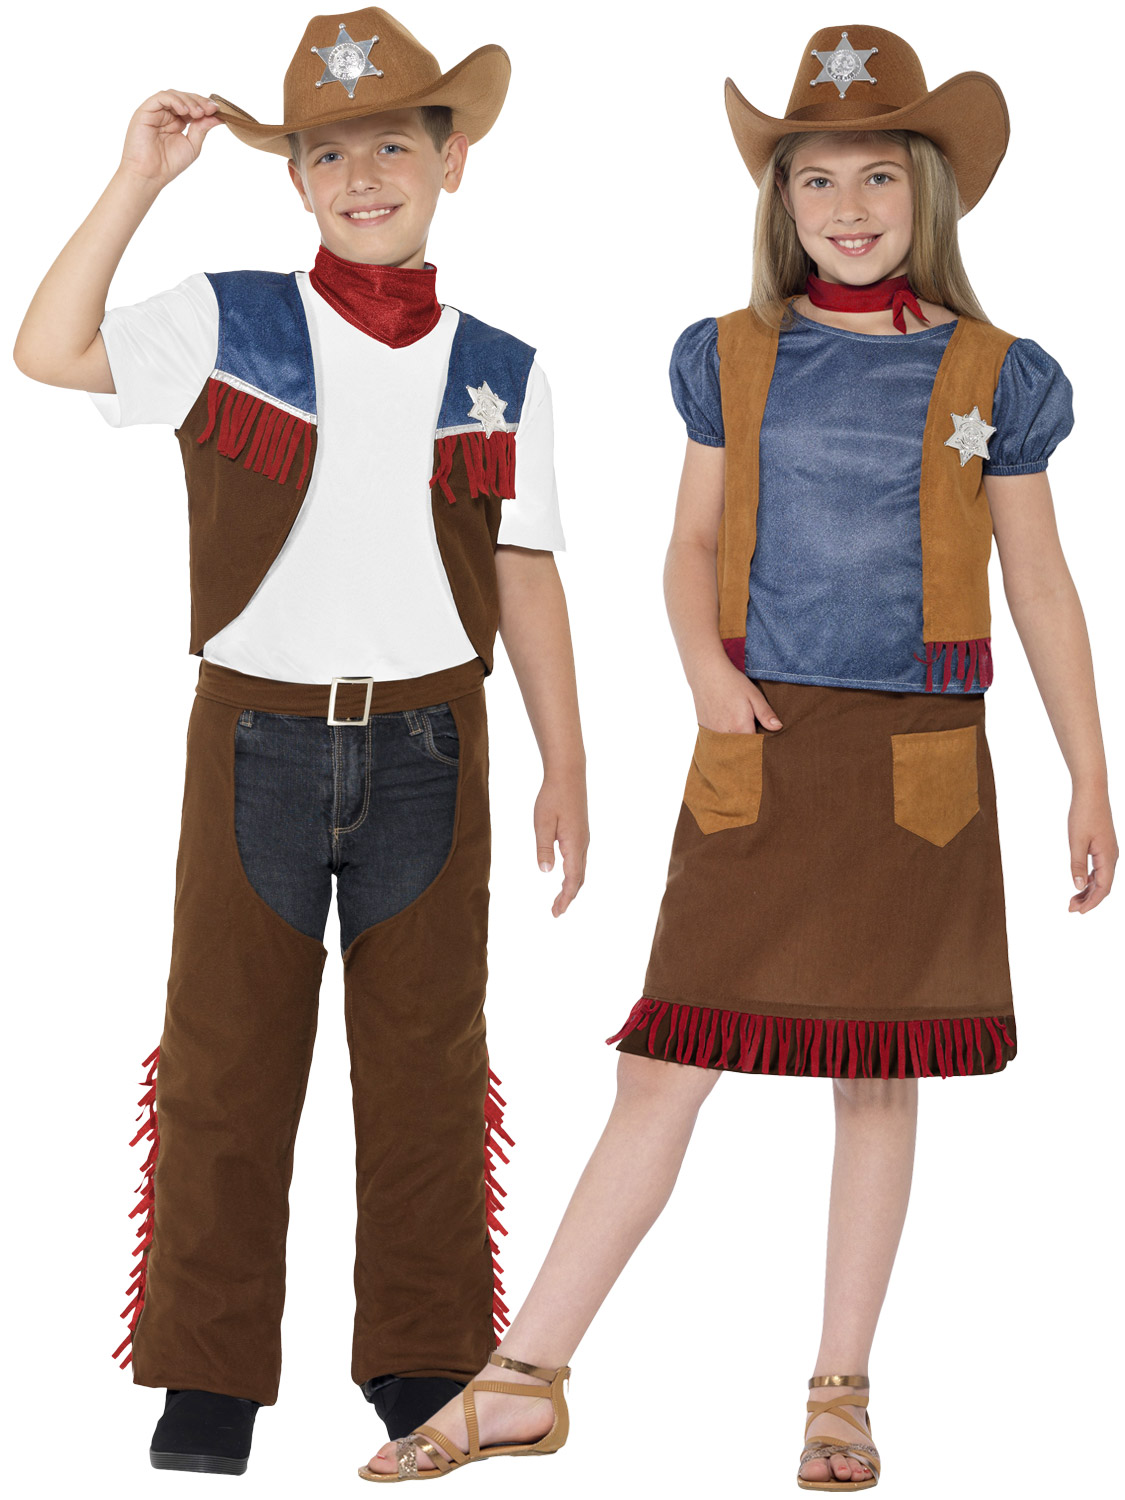 Slapping adult western style costumes extra large sizes chaude